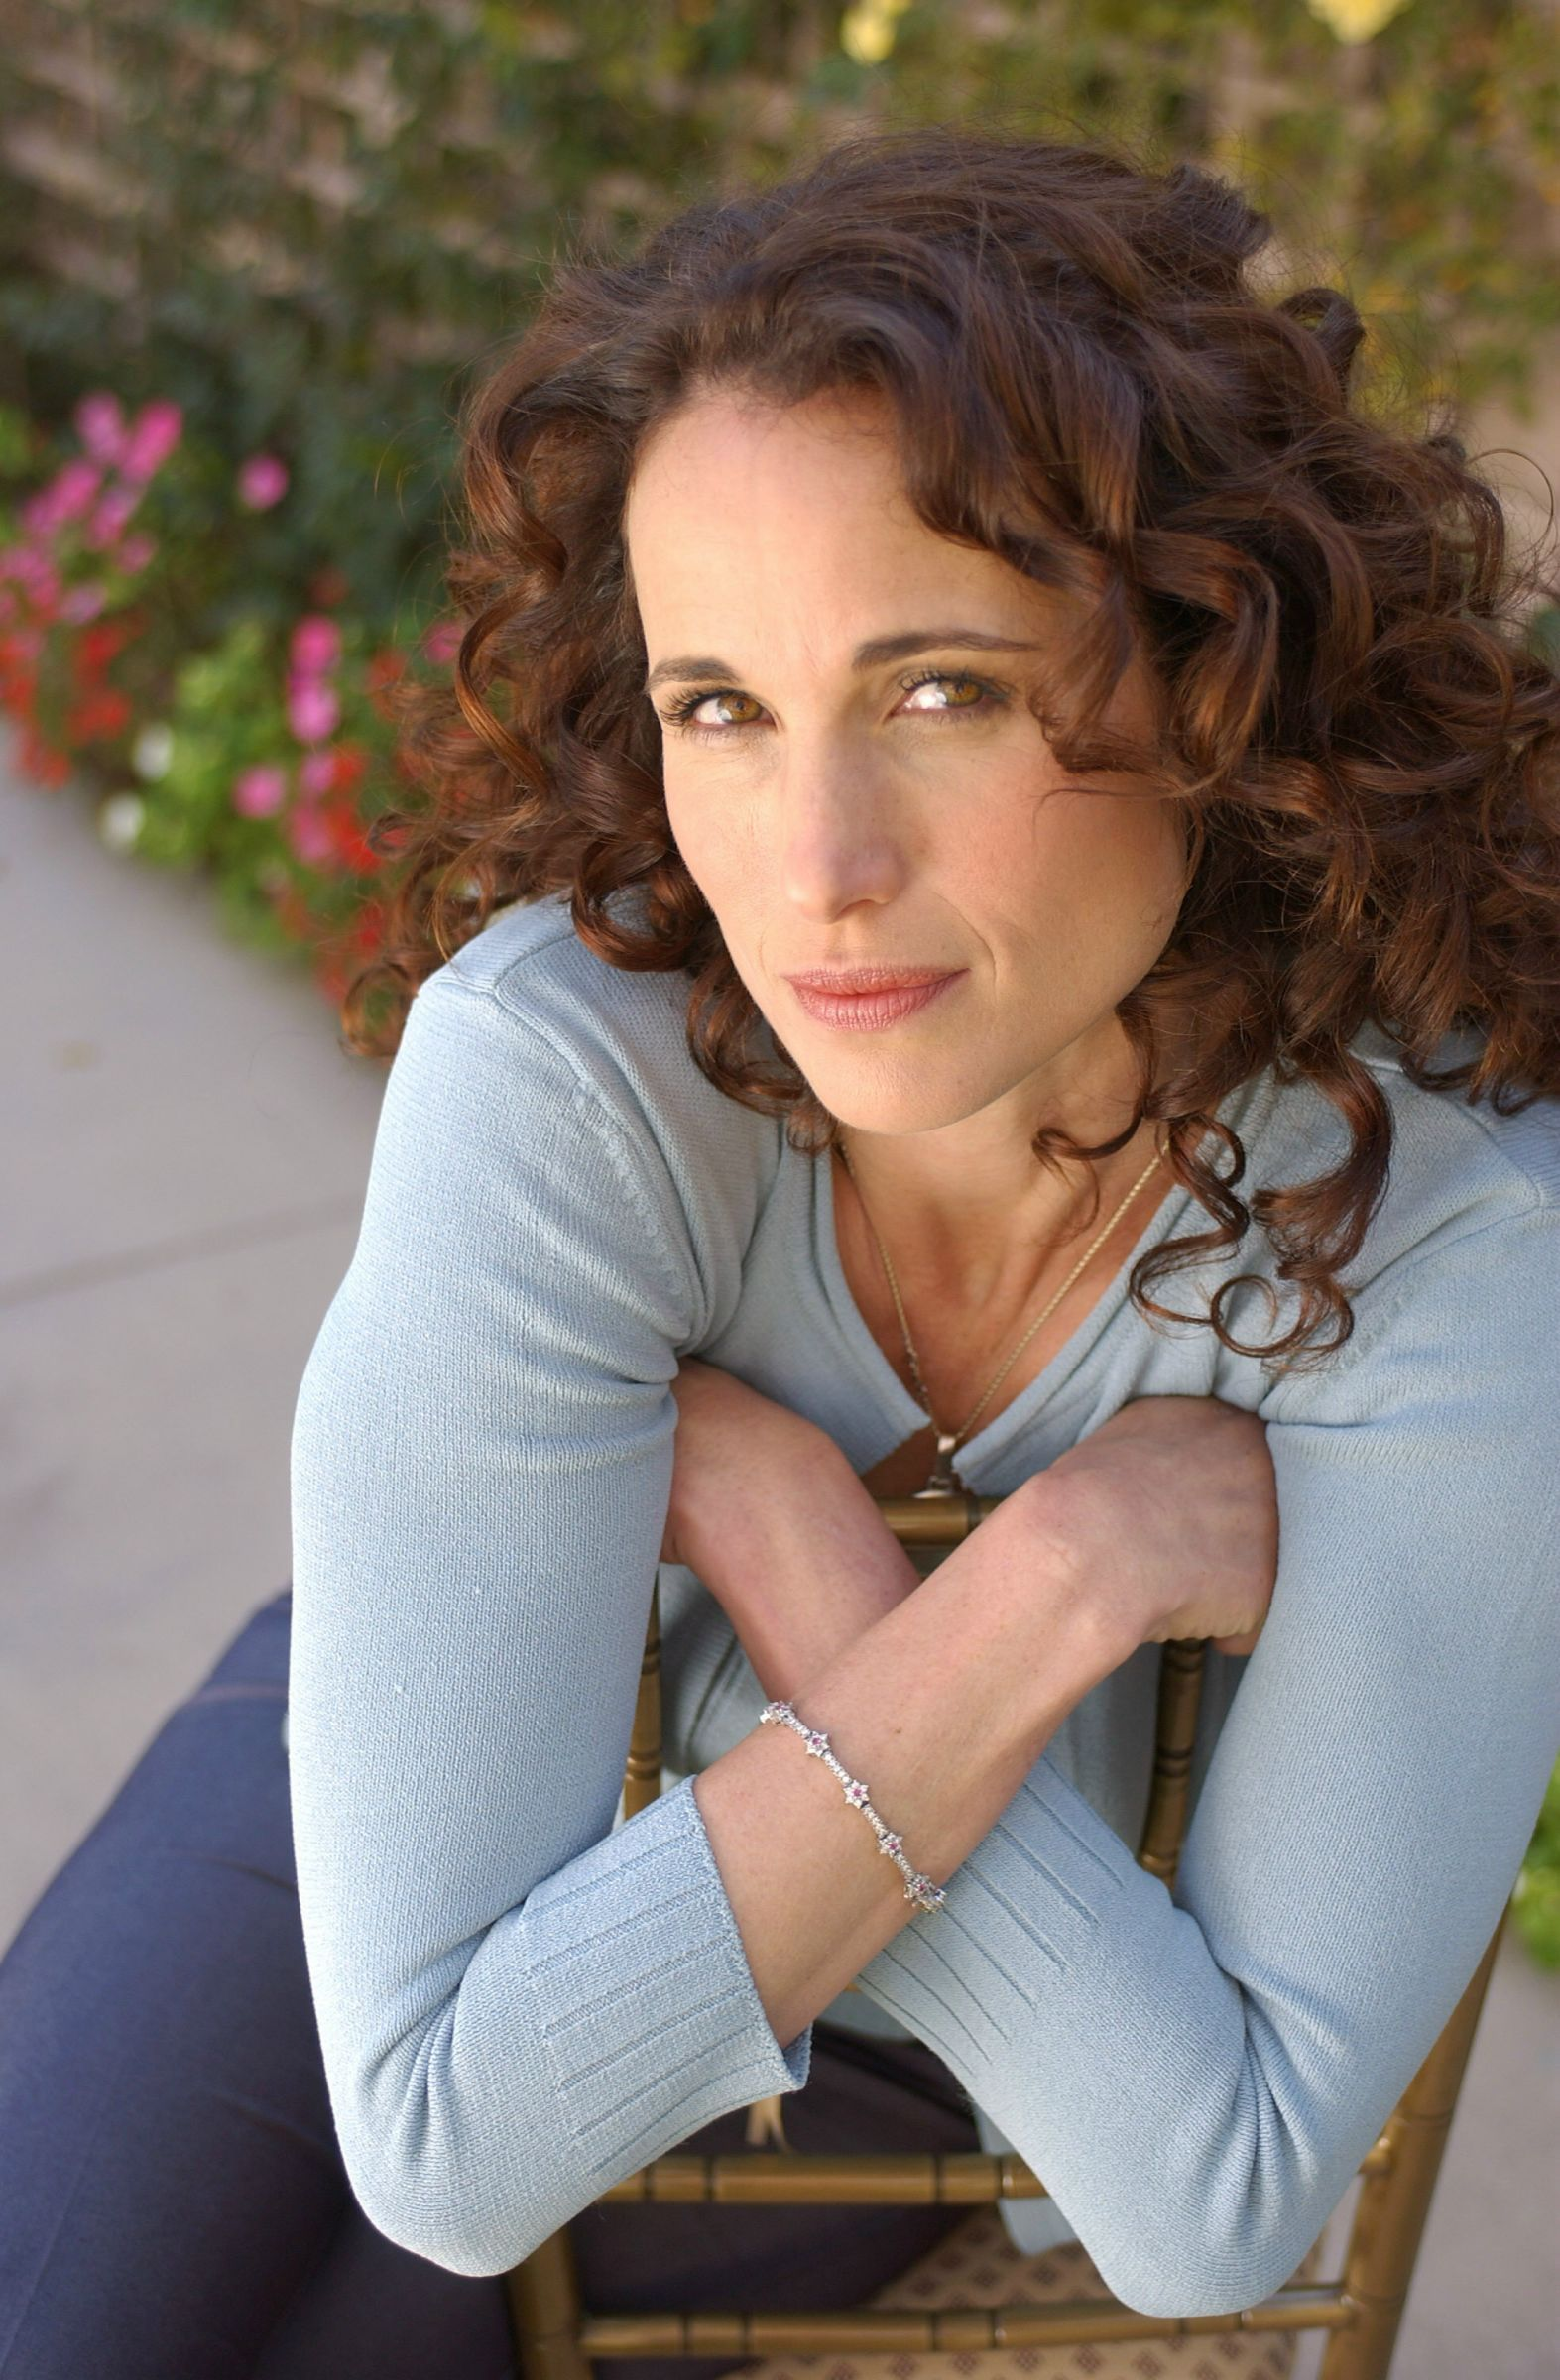 Paparazzi Andie MacDowell nudes (61 photo), Sexy, Hot, Twitter, lingerie 2020